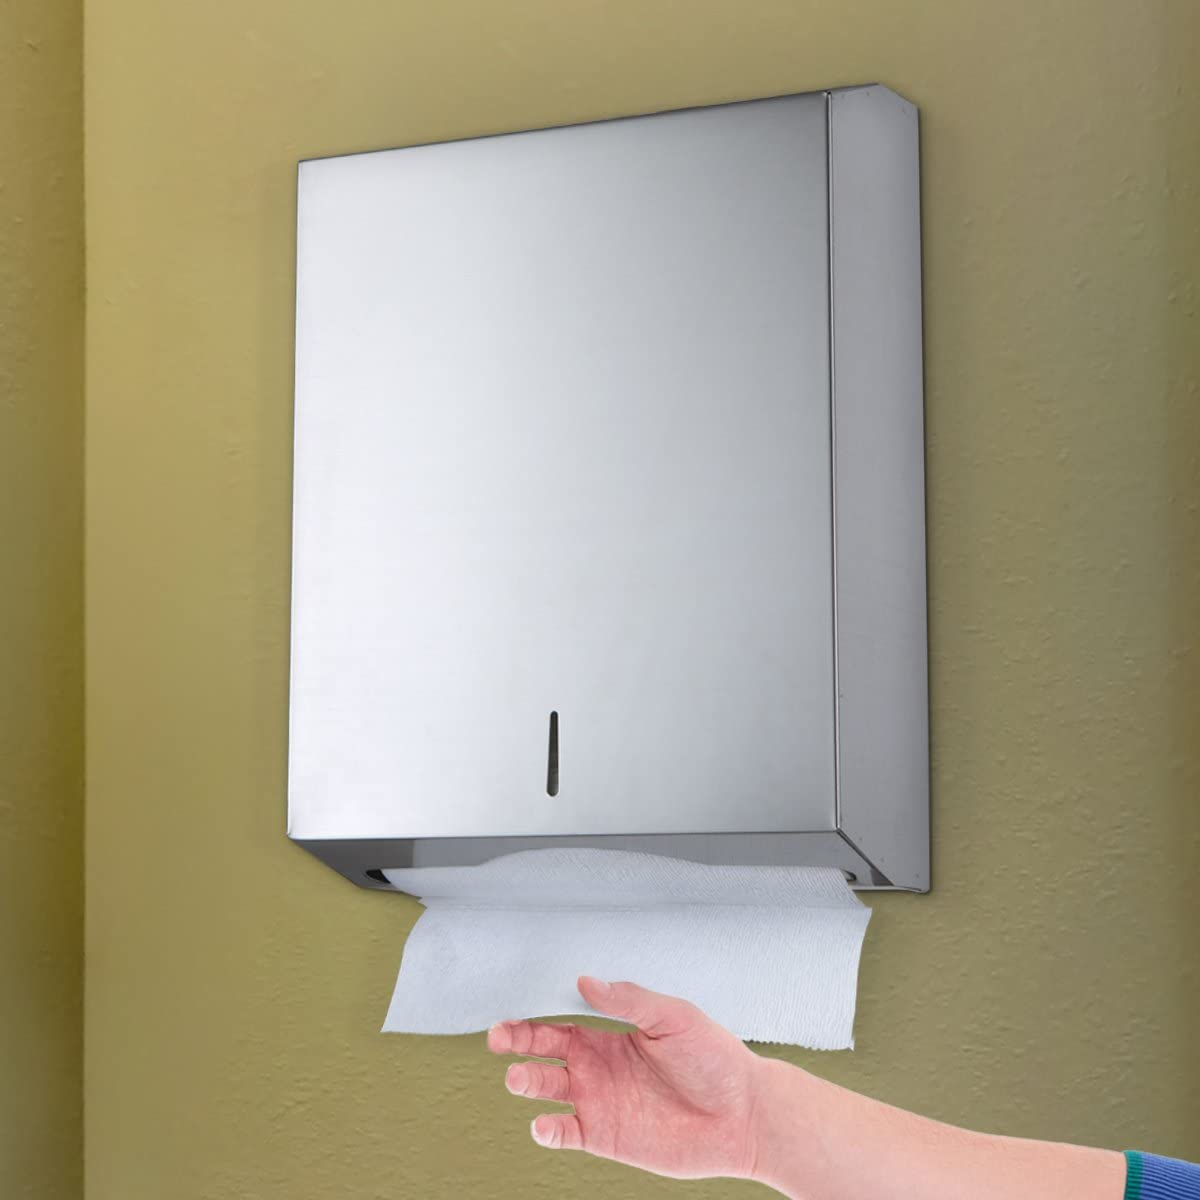 Brushed Stainless Steel Alpine industries C-Fold//Multifold Paper Towel Dispenser Holds Up To 400 C-Fold Or 525 Multifold Towels